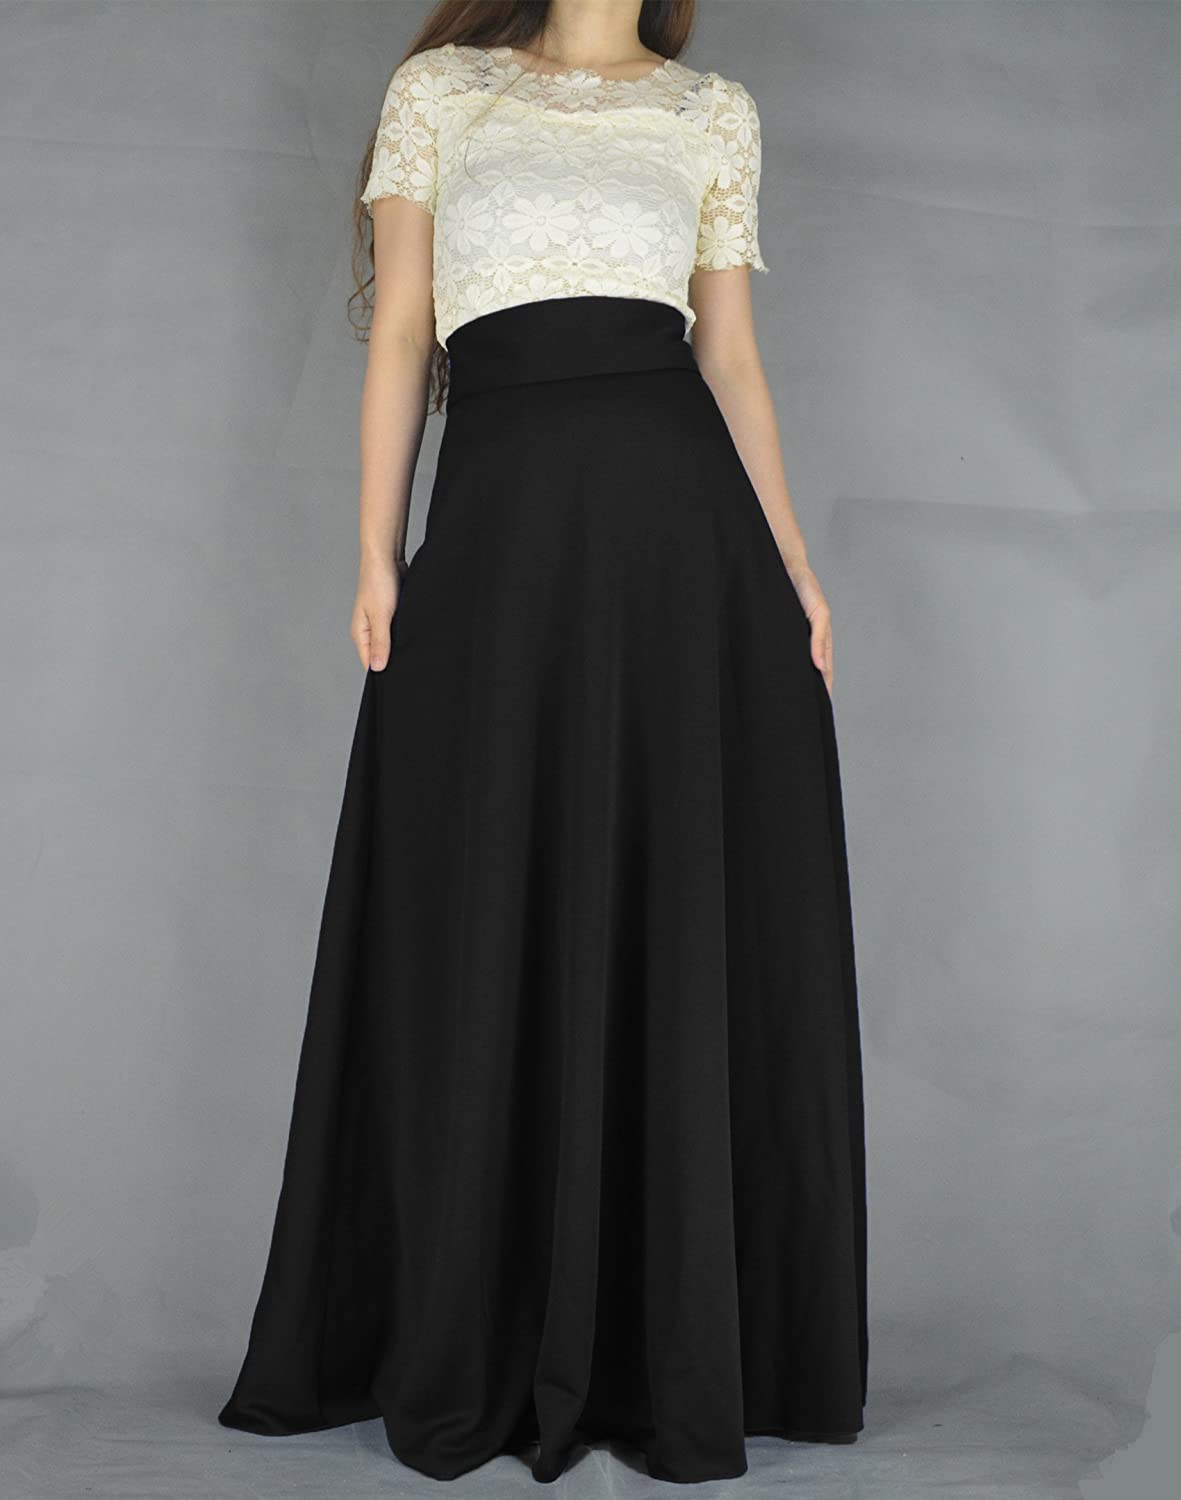 Edwardian Ladies Clothing – 1900, 1910s, Titanic Era YSJ Womens High Waist A-Line Pleated Solid Vintage Swing Maxi Skirts Midi Skirt Party $31.99 AT vintagedancer.com